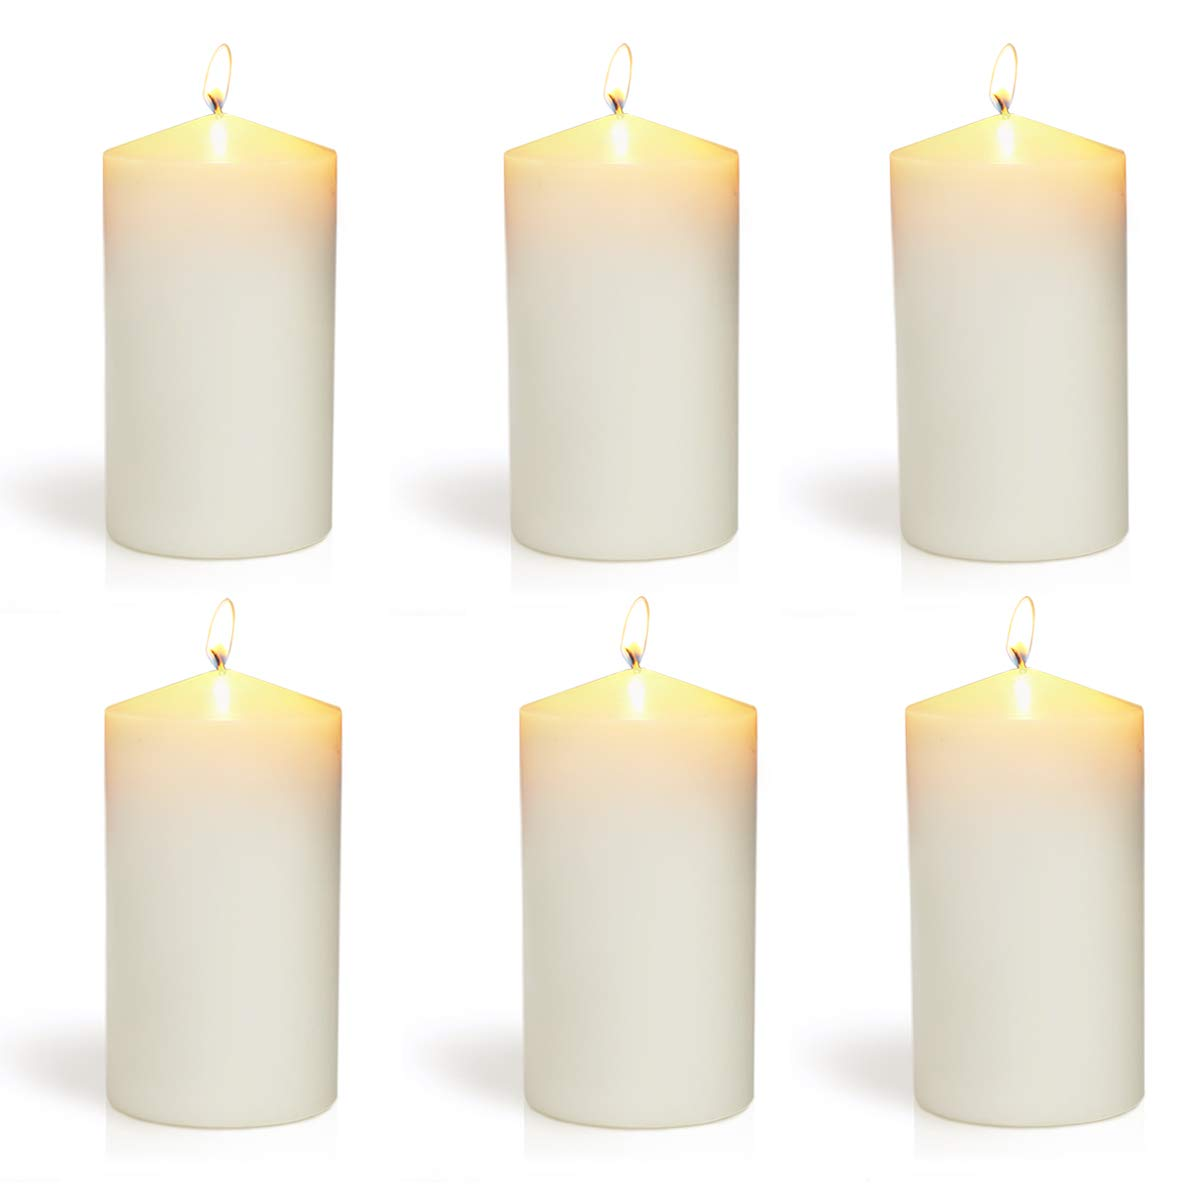 XYUT 3x6 Set of 6 Ivory Pillar Candles Aprox 3x6 inches